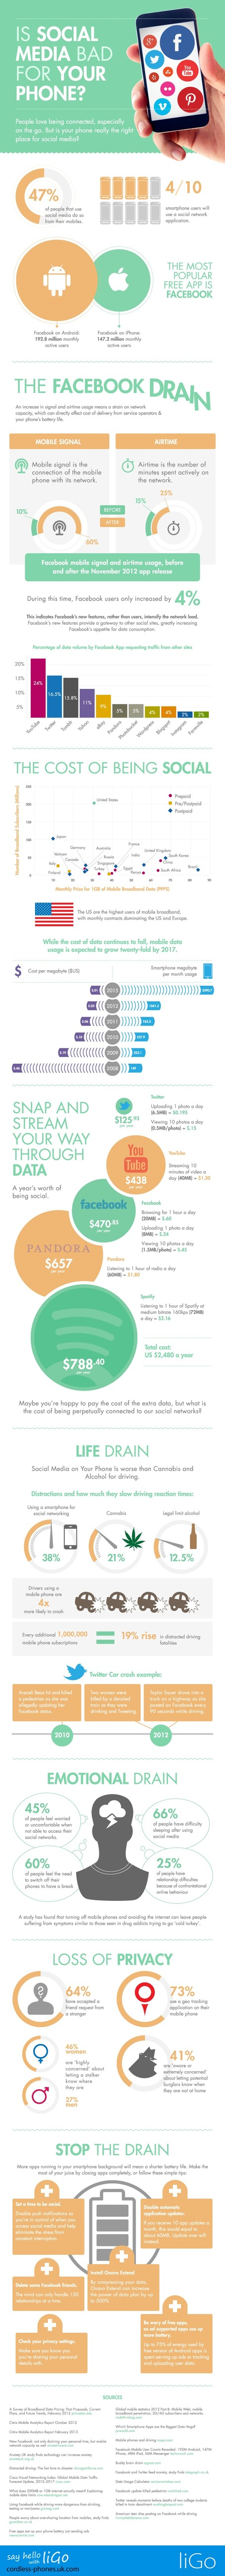 How Bad Are Social Media For Your Phone And What Can You Do About It? #infographic DR4WARD | Social Mercor | Scoop.it